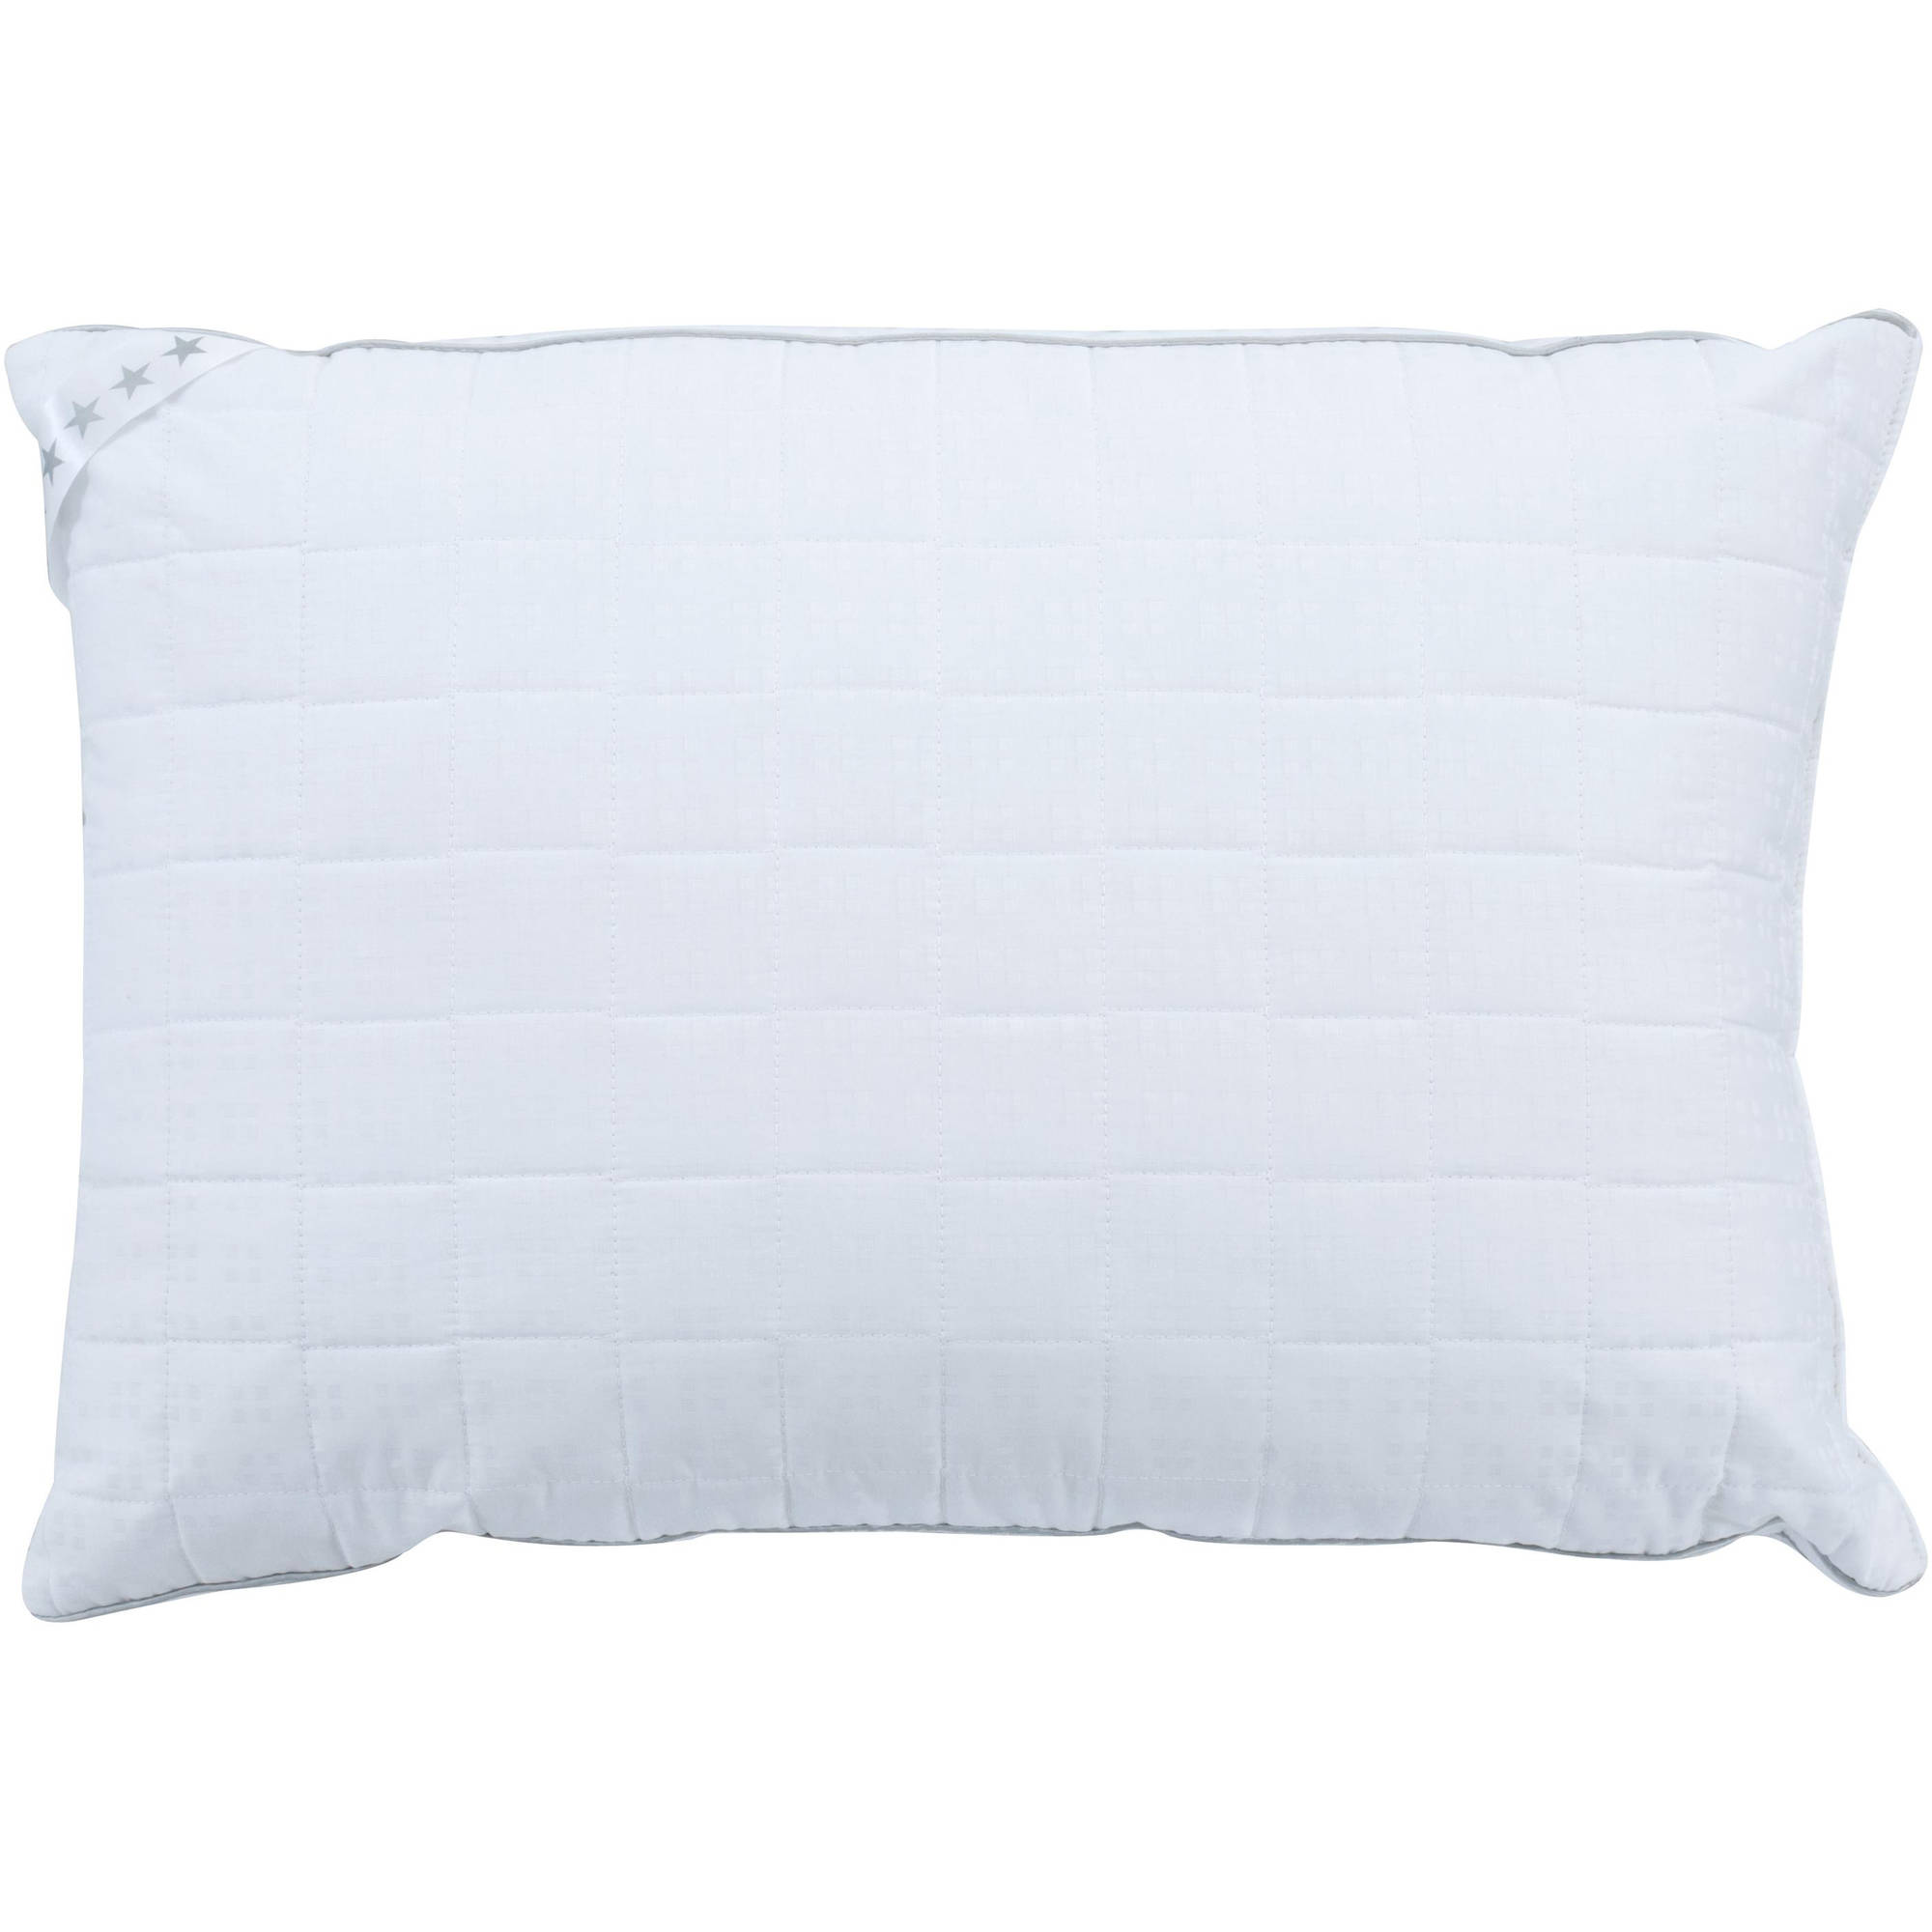 strategist sleepers zone article wamsutta sleeper for side pillow the dream pillows best